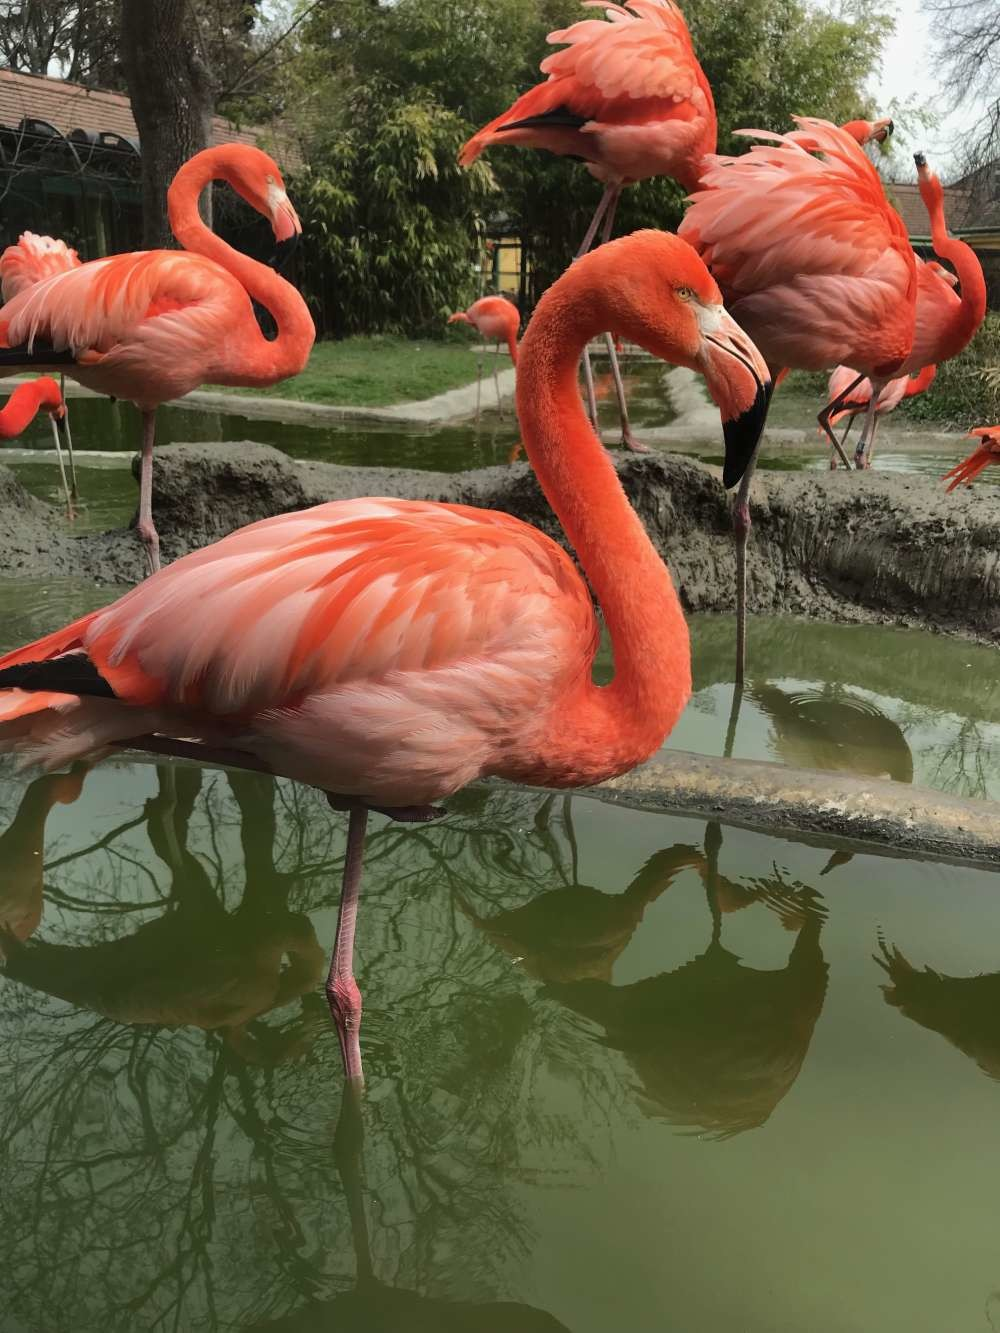 Flamingo's - Zoo Wenen